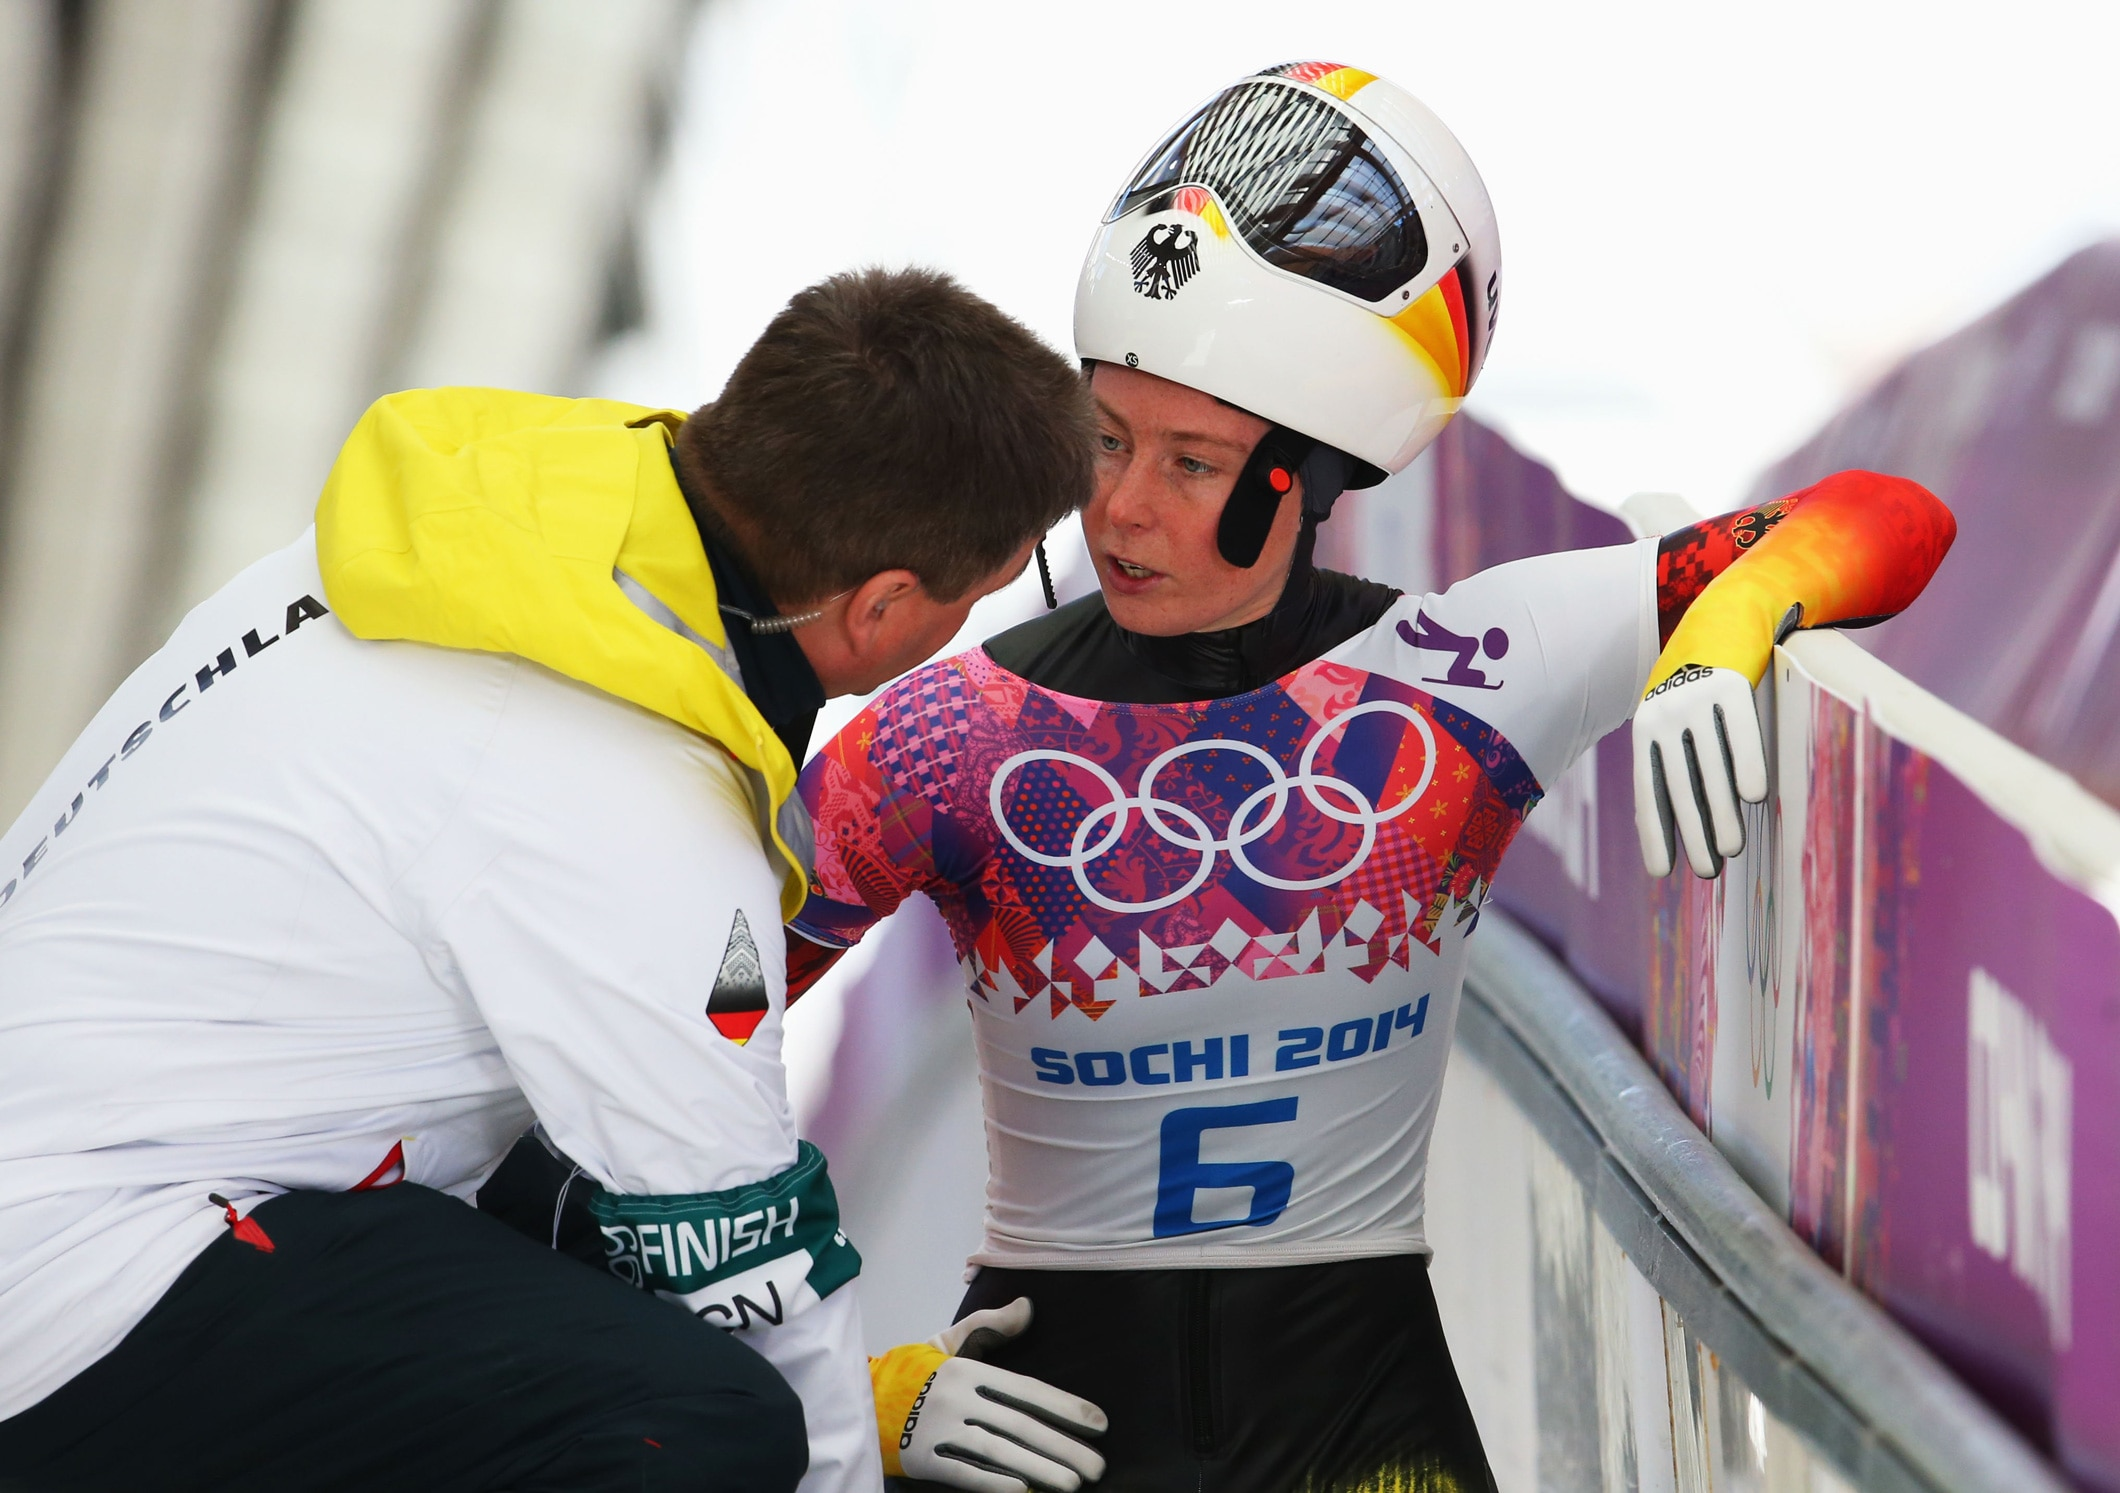 Marion Thees of Germany talks with her coach at Sochi 2014